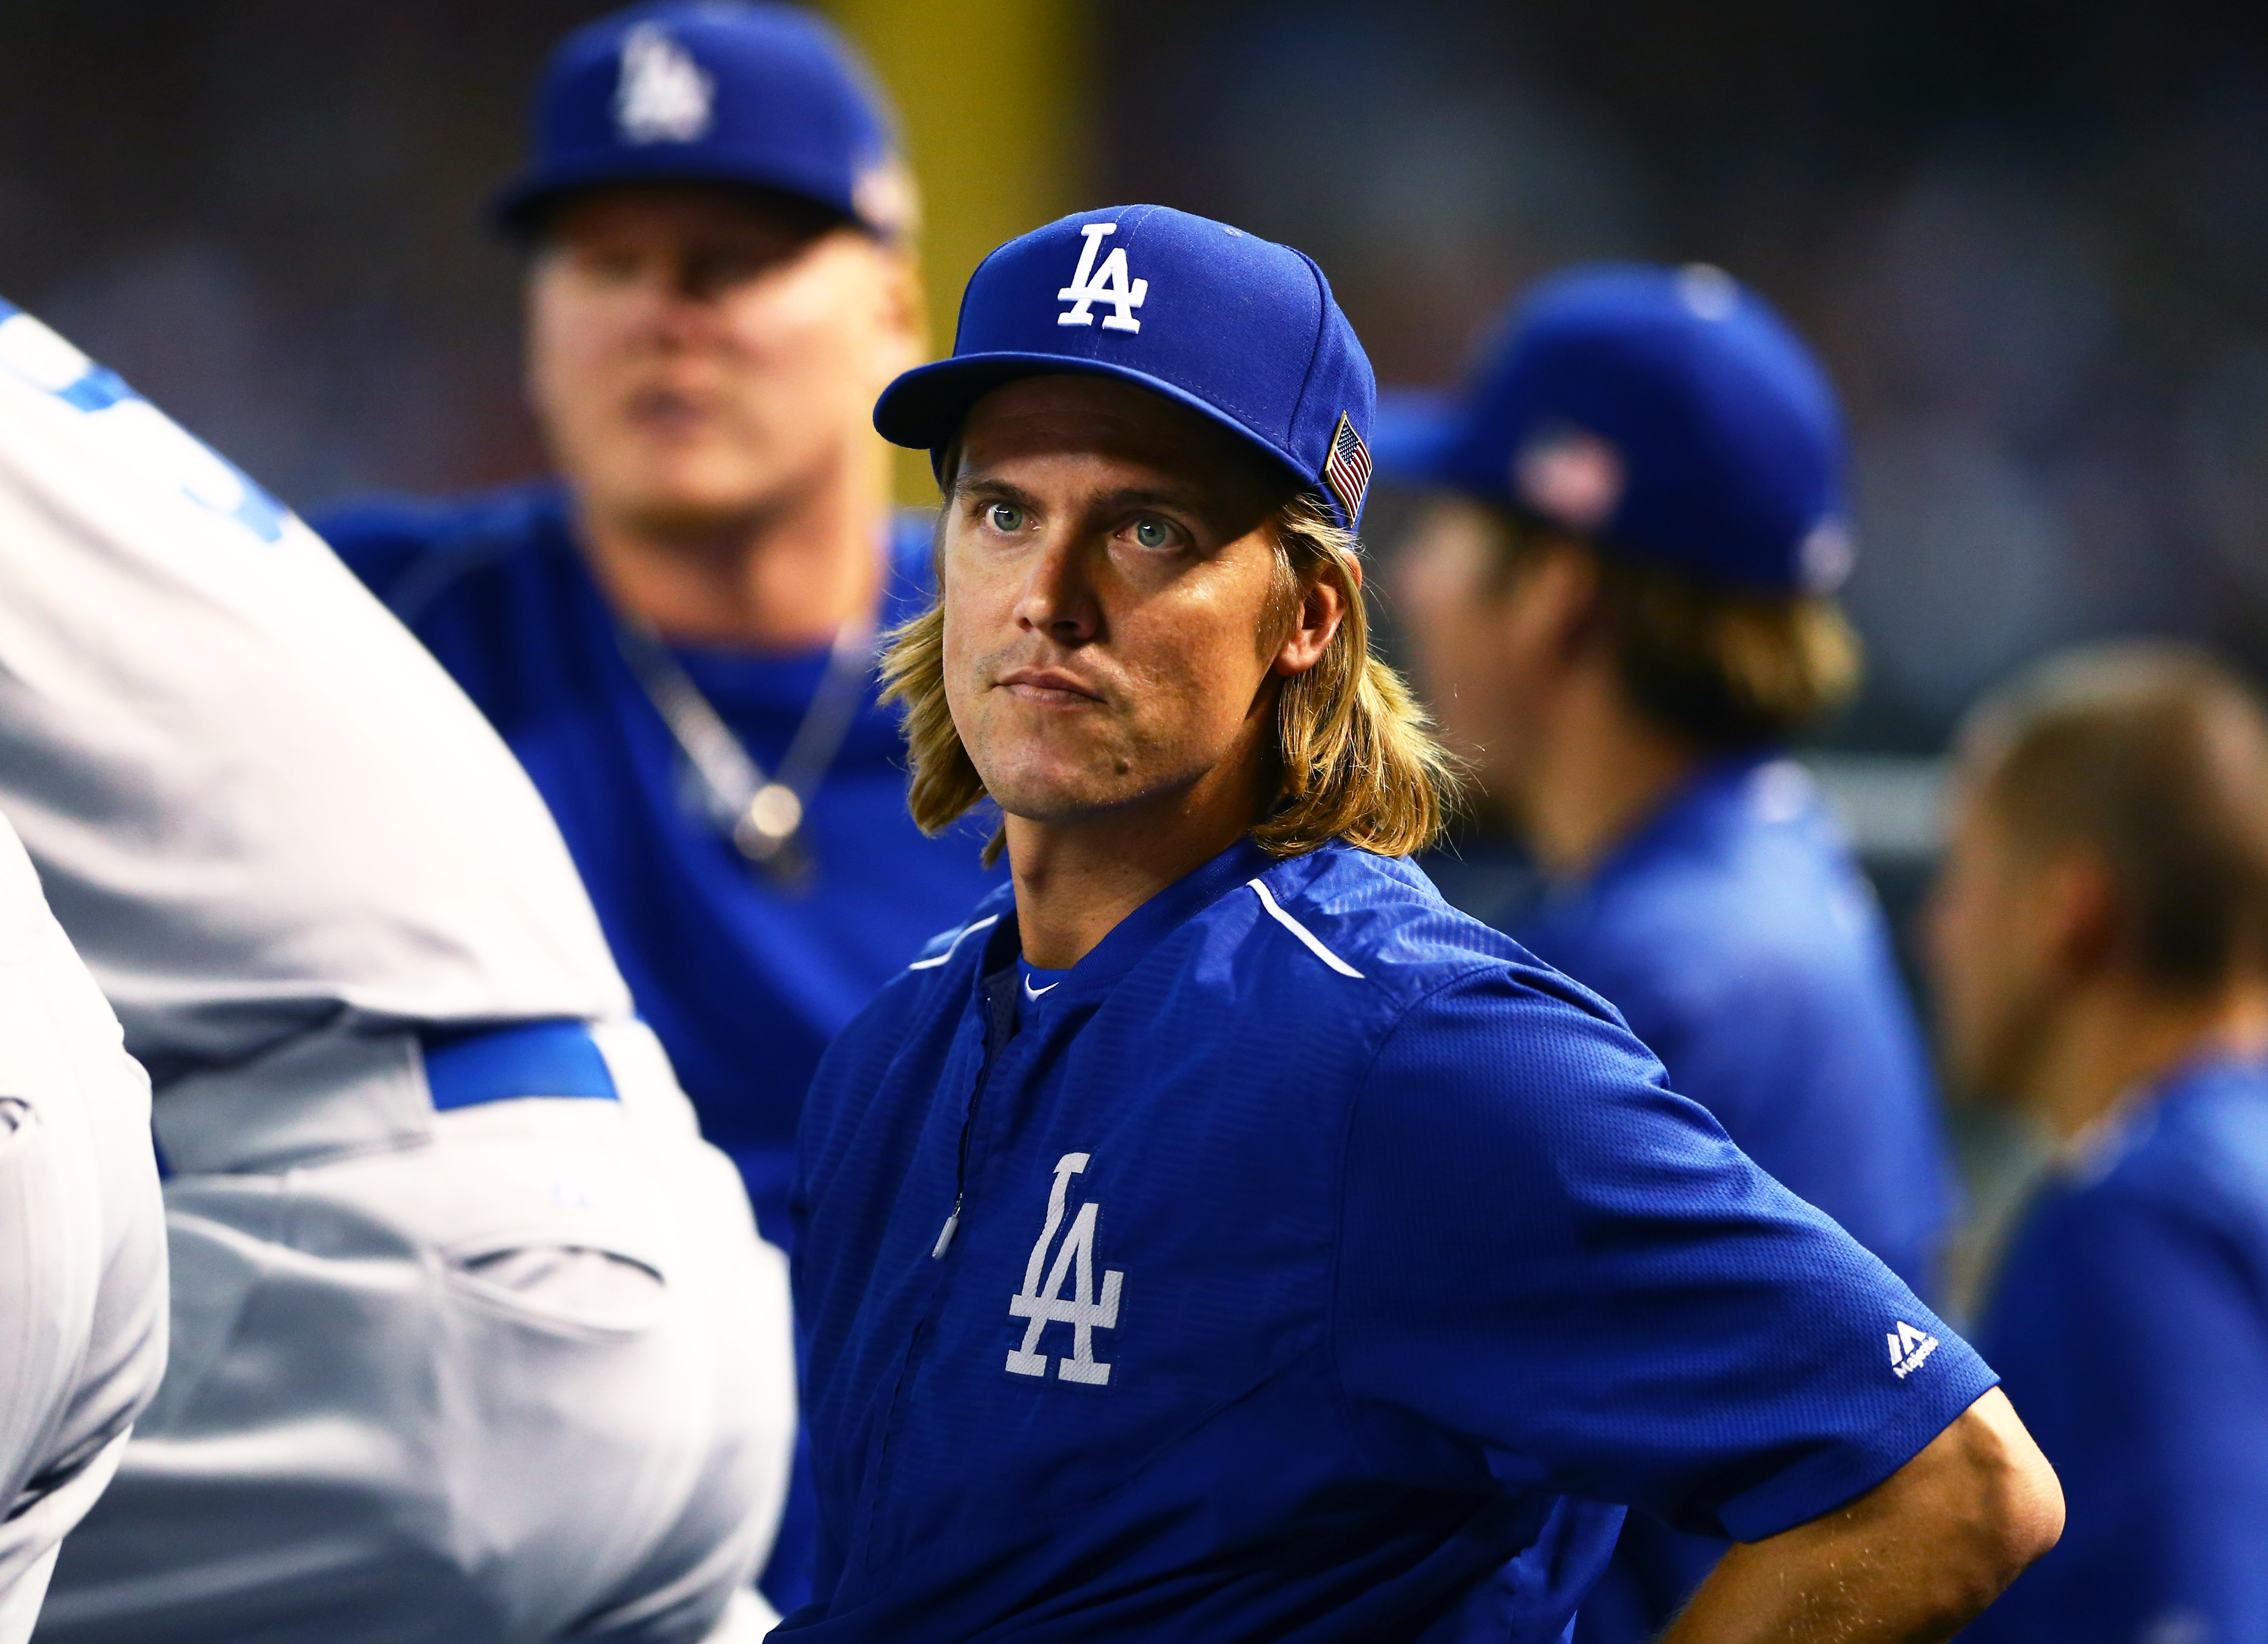 Zack Greinke, seen here daydreaming about FIP